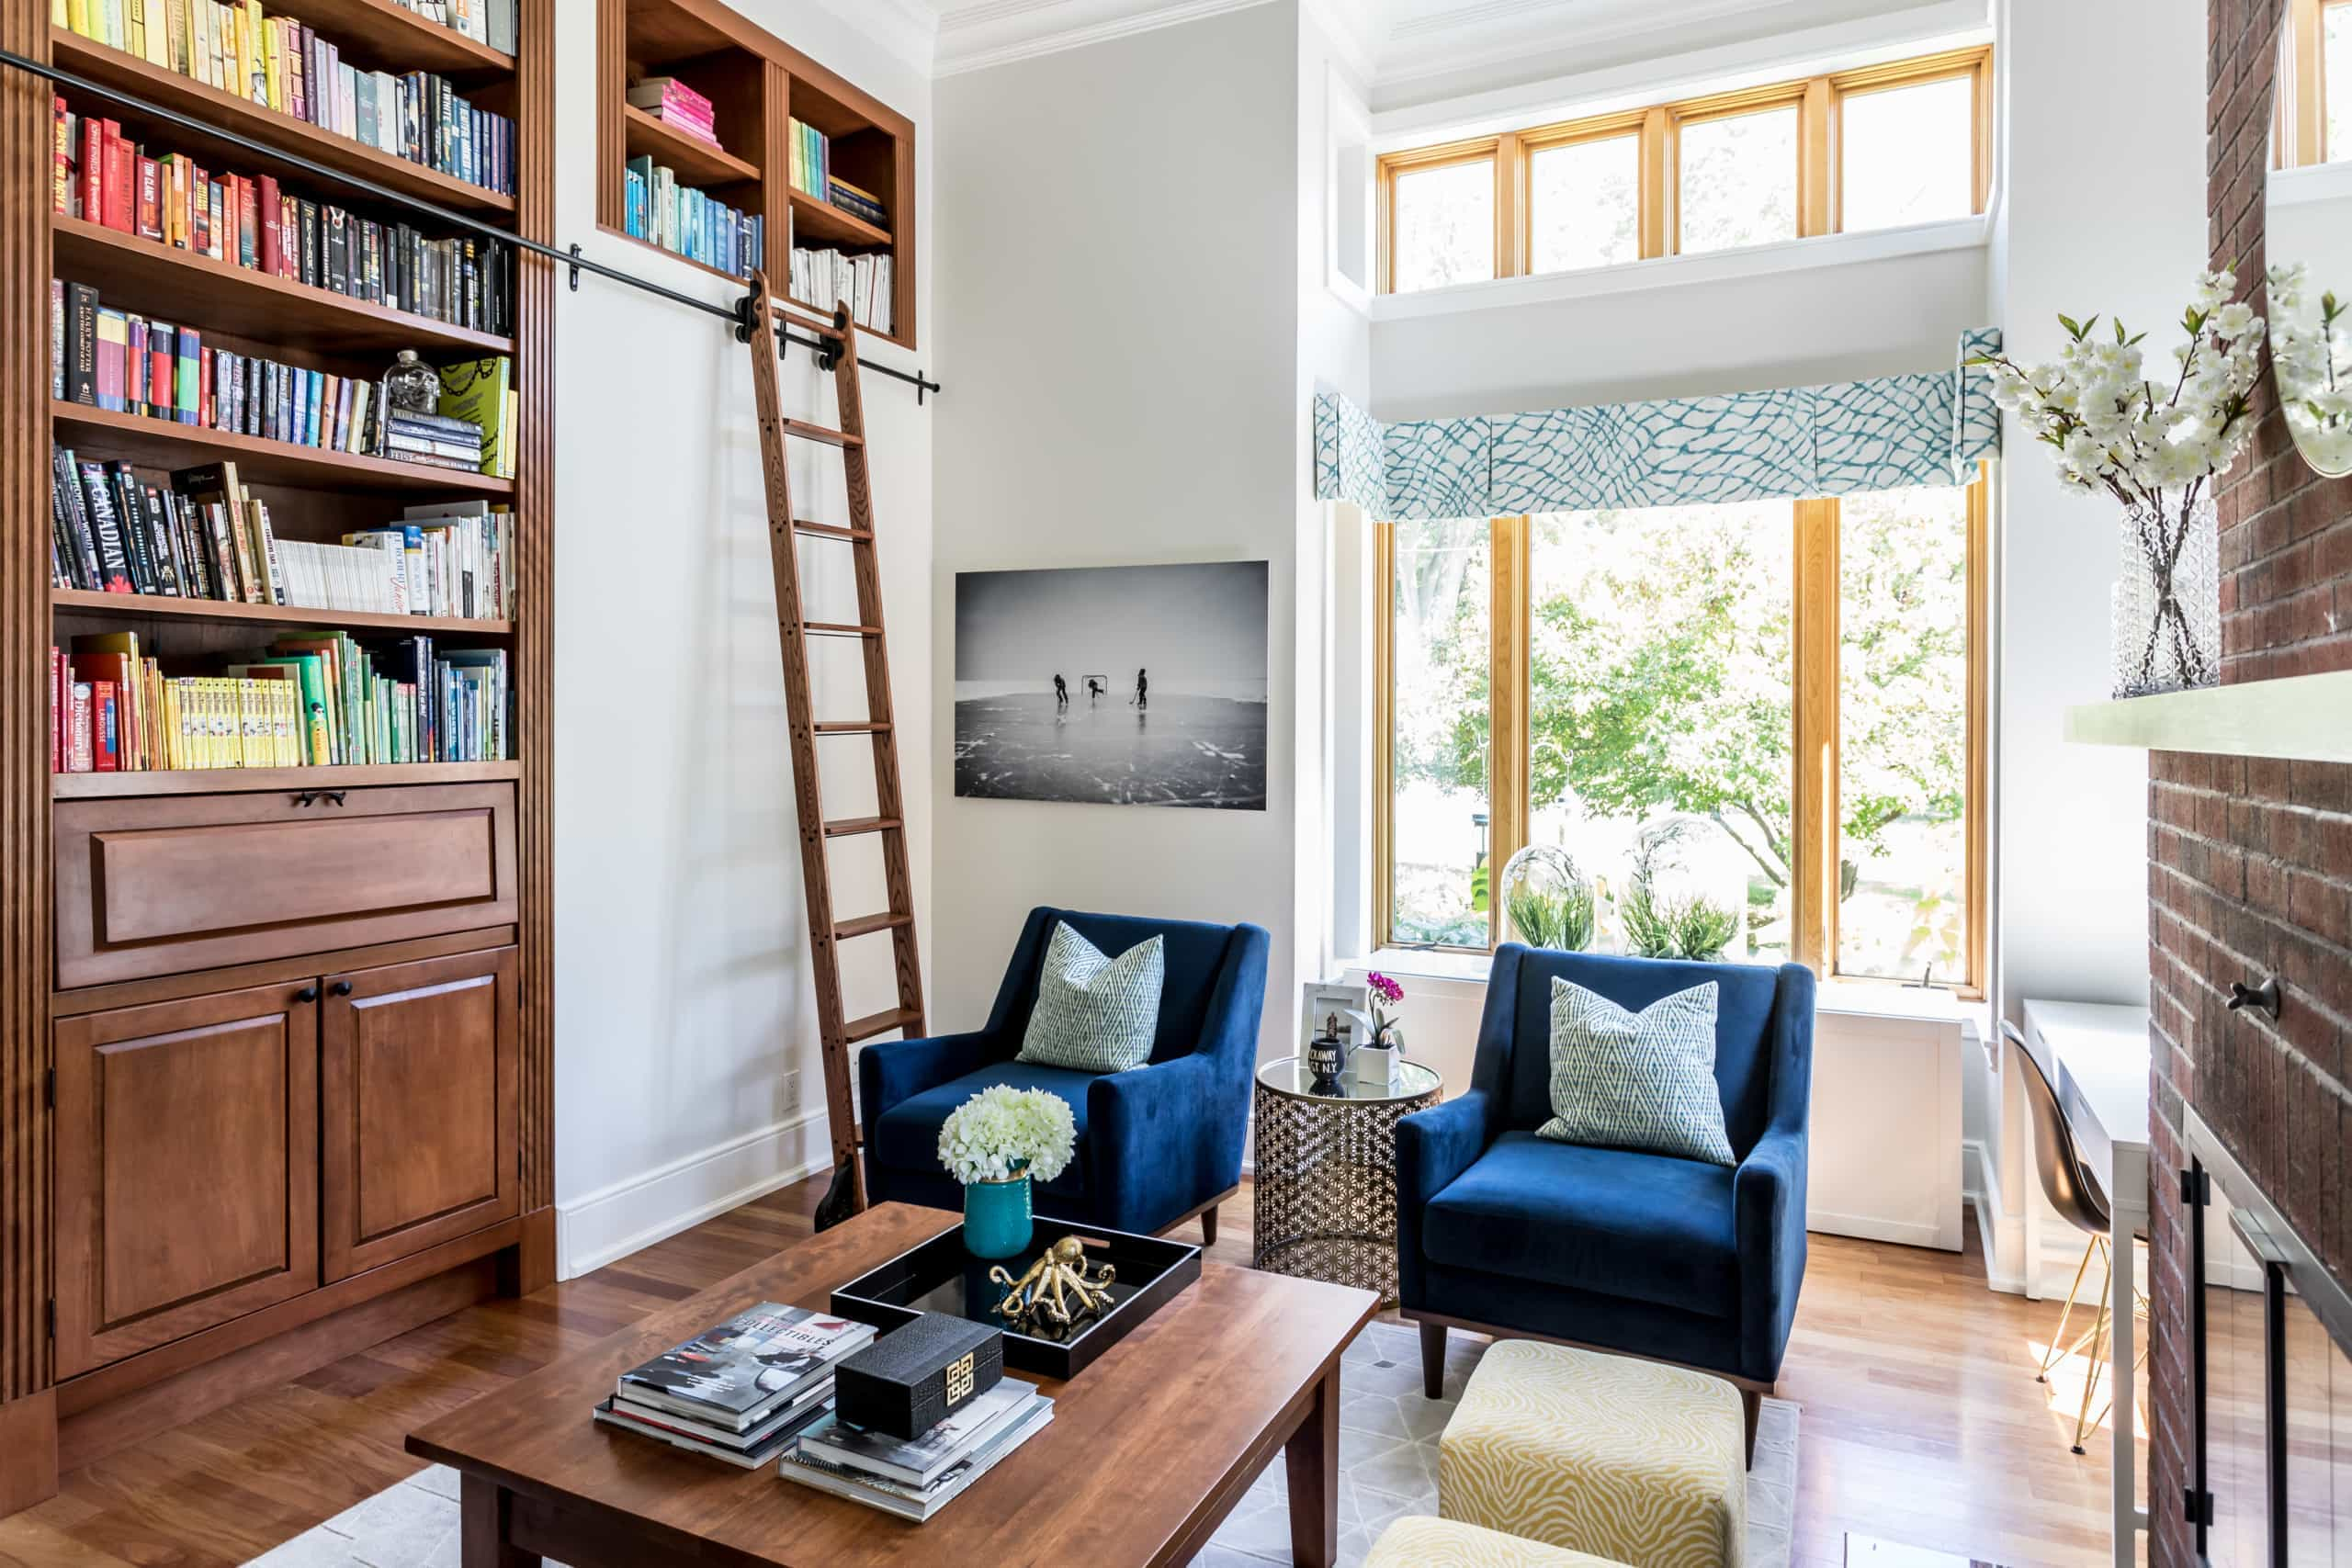 Tall living room with a ladder to reach the top bookshelf's